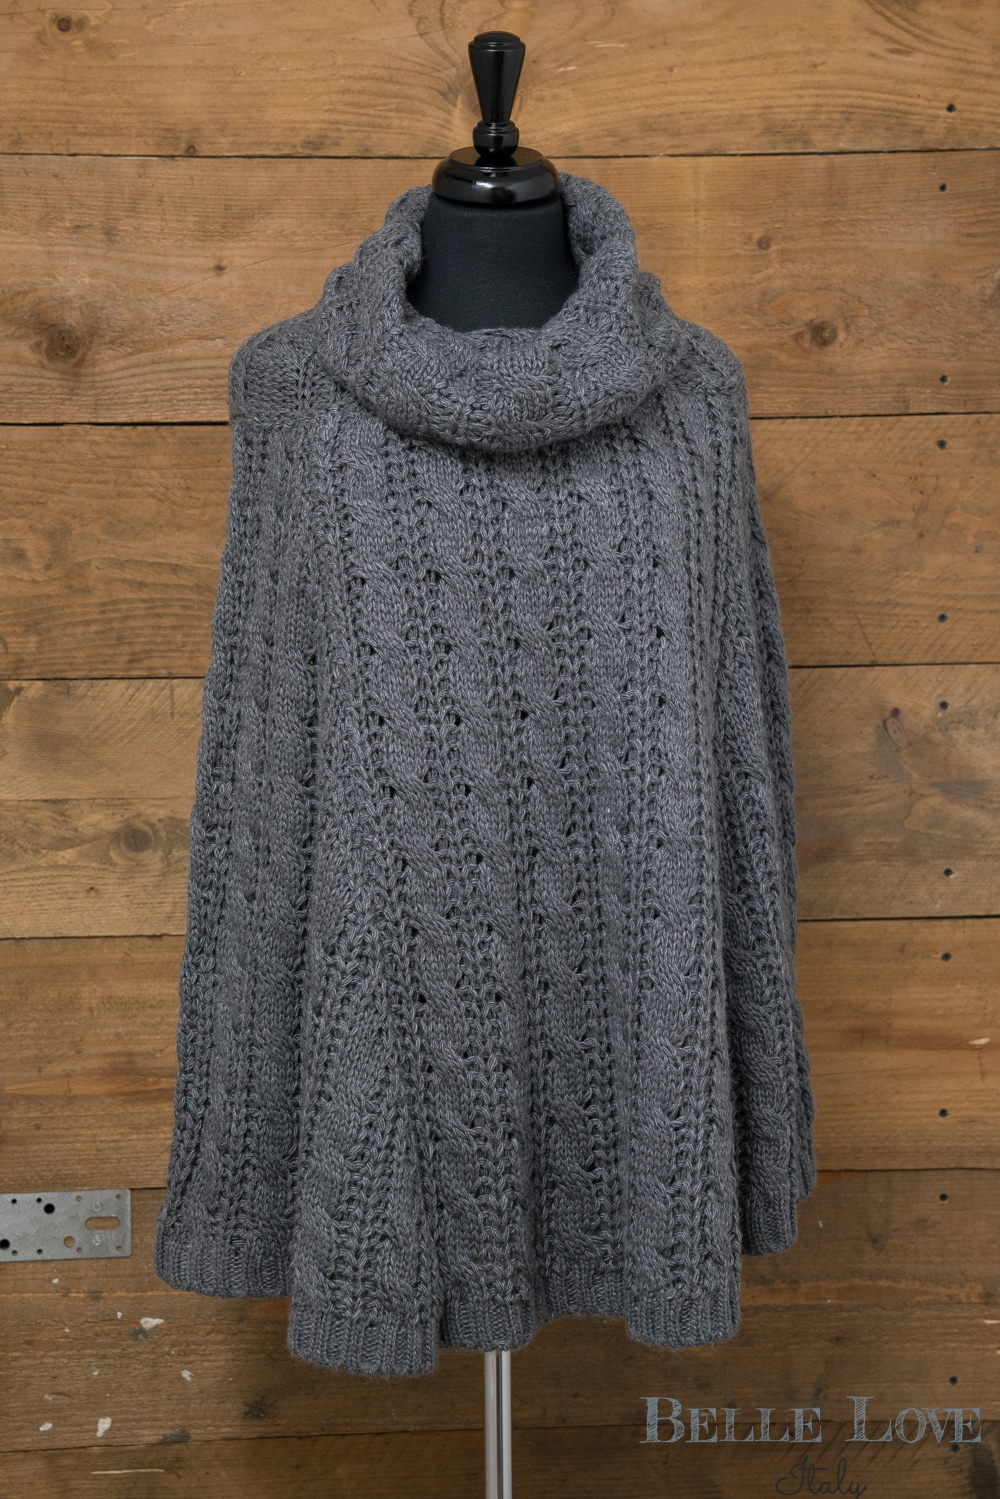 Belle love Italy Knitted Poncho